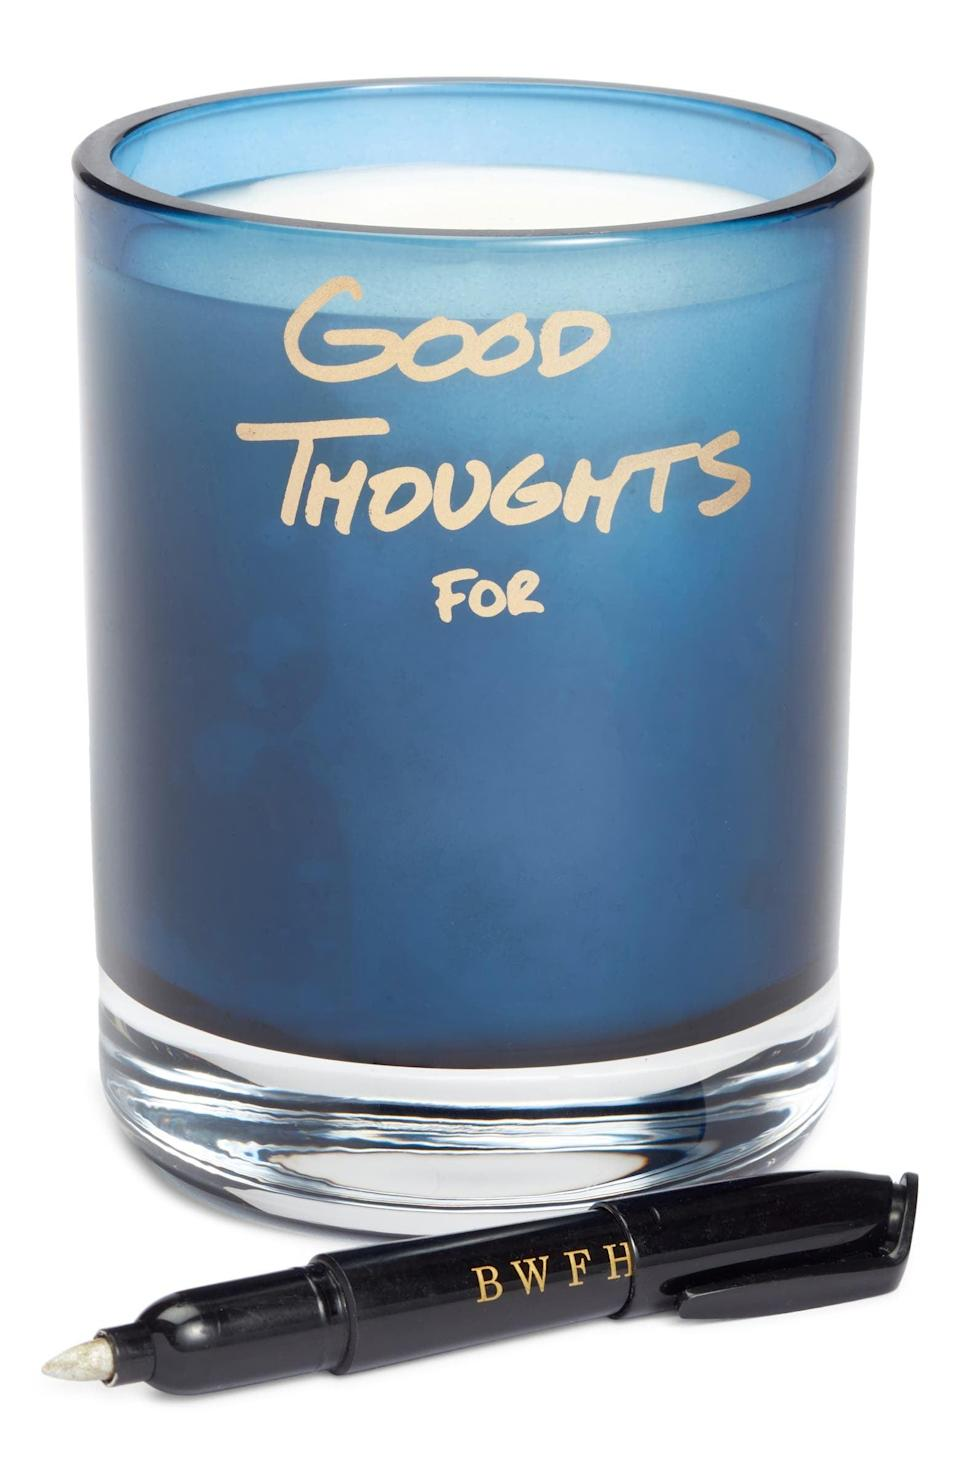 <p>This <span>Better World Fragrance House Good Thoughts Candle</span> ($48) doesn't just smell amazing, but it's so cool. You can write an inspirational message on it.</p>